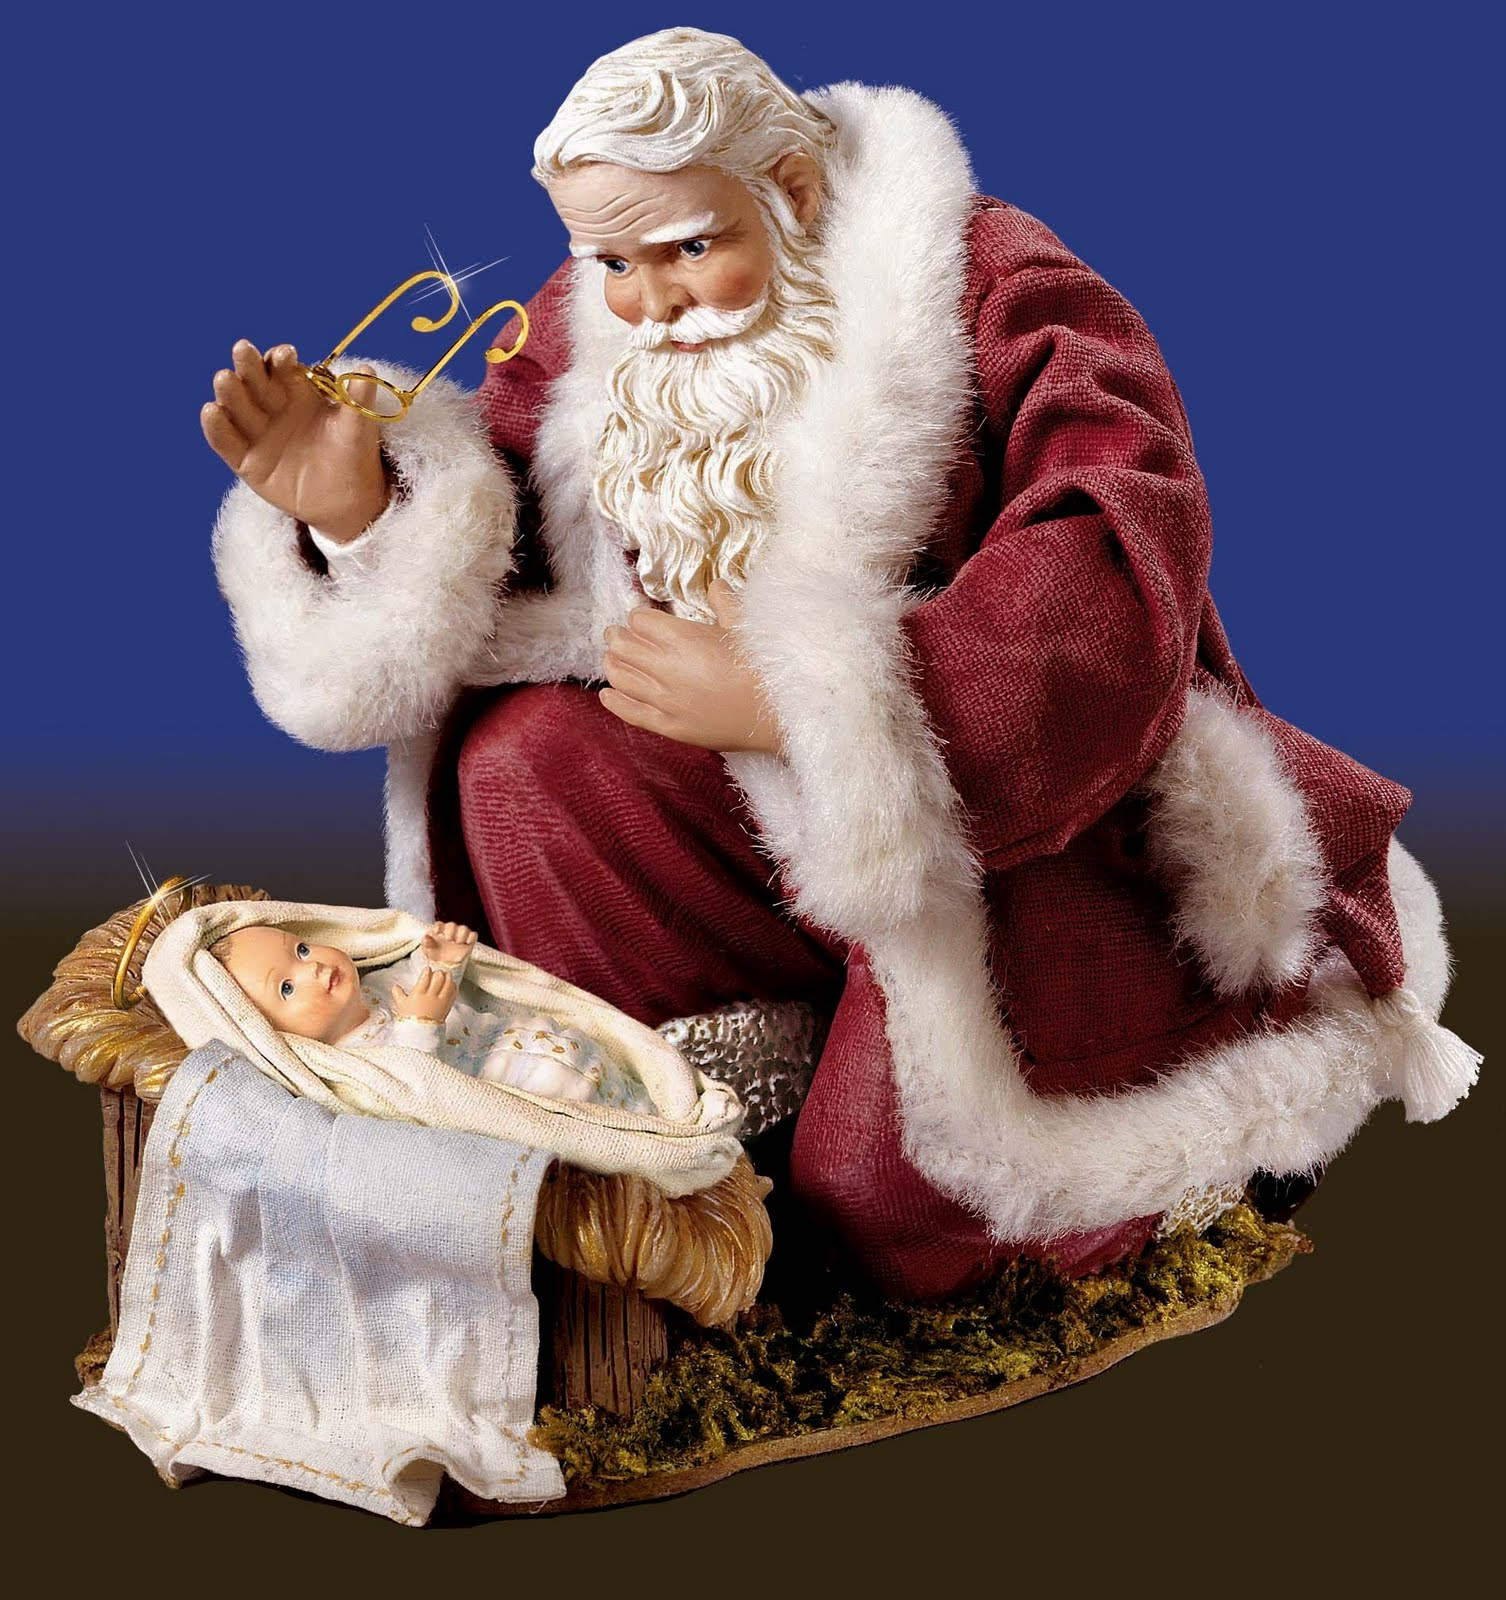 Christmas Wallpapers and Images and Photos: baby jesus ...